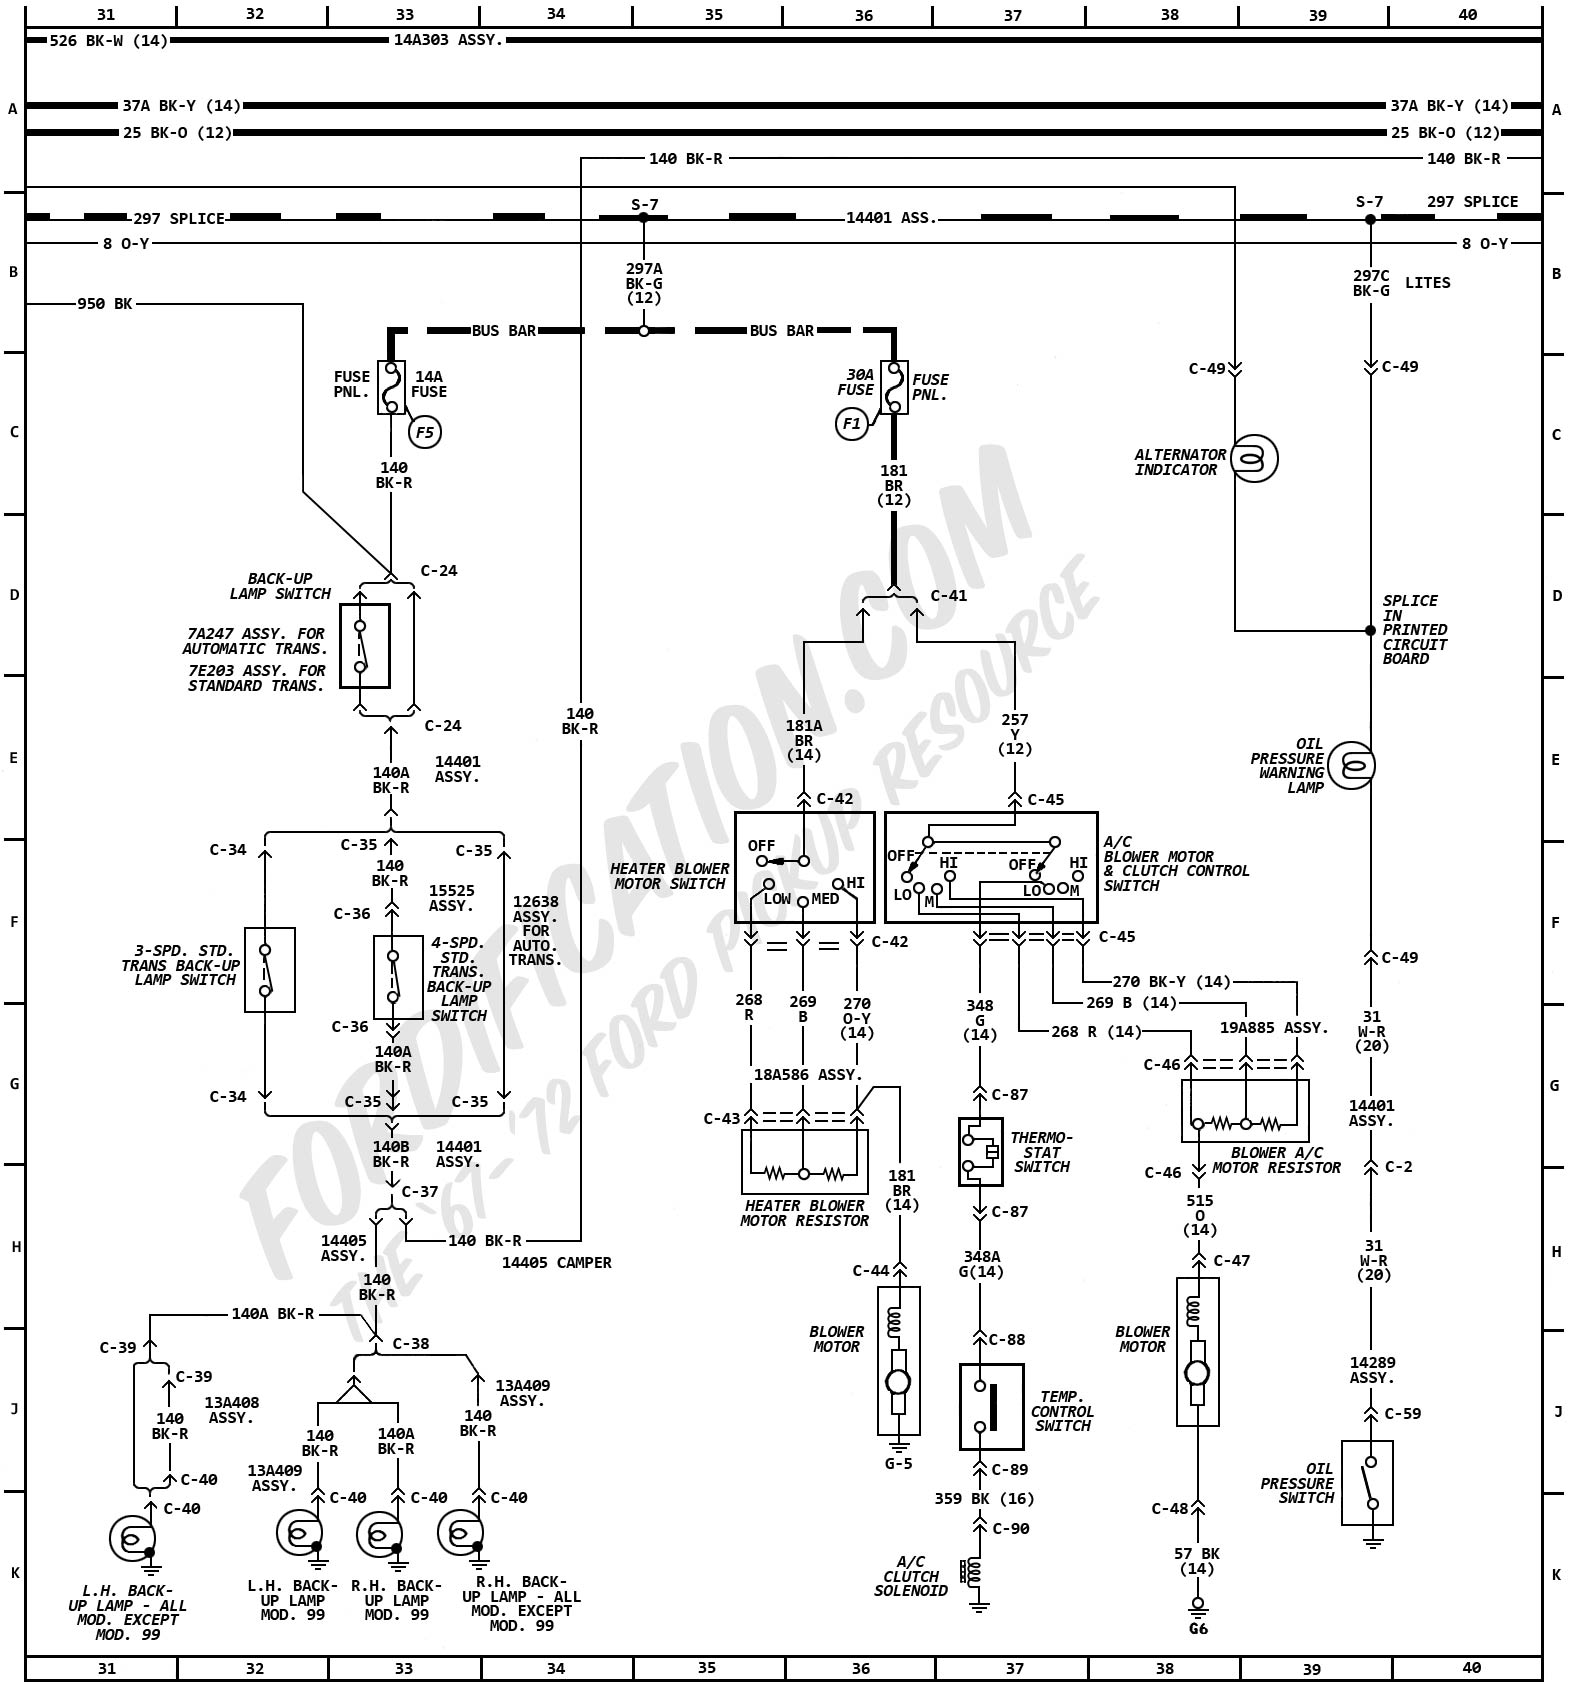 1972MasterWiring_04 1972 ford truck wiring diagrams fordification com motor wiring diagram at bayanpartner.co